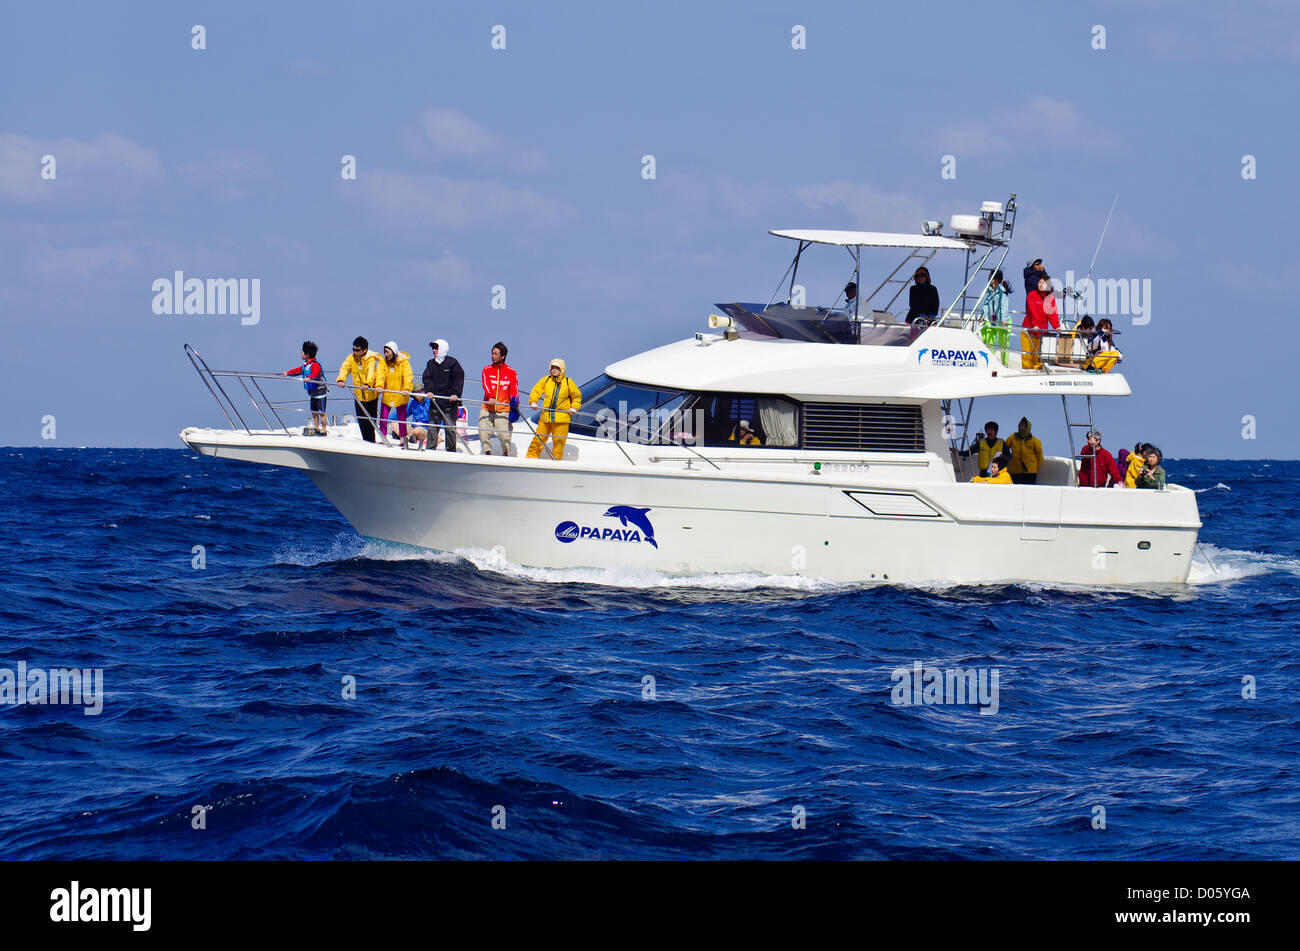 Dolphin and Whale Sightseeing Boat with Passengers cruising around Chichijima, Ogasawara Islands, Tokyo, Japan - Stock Image